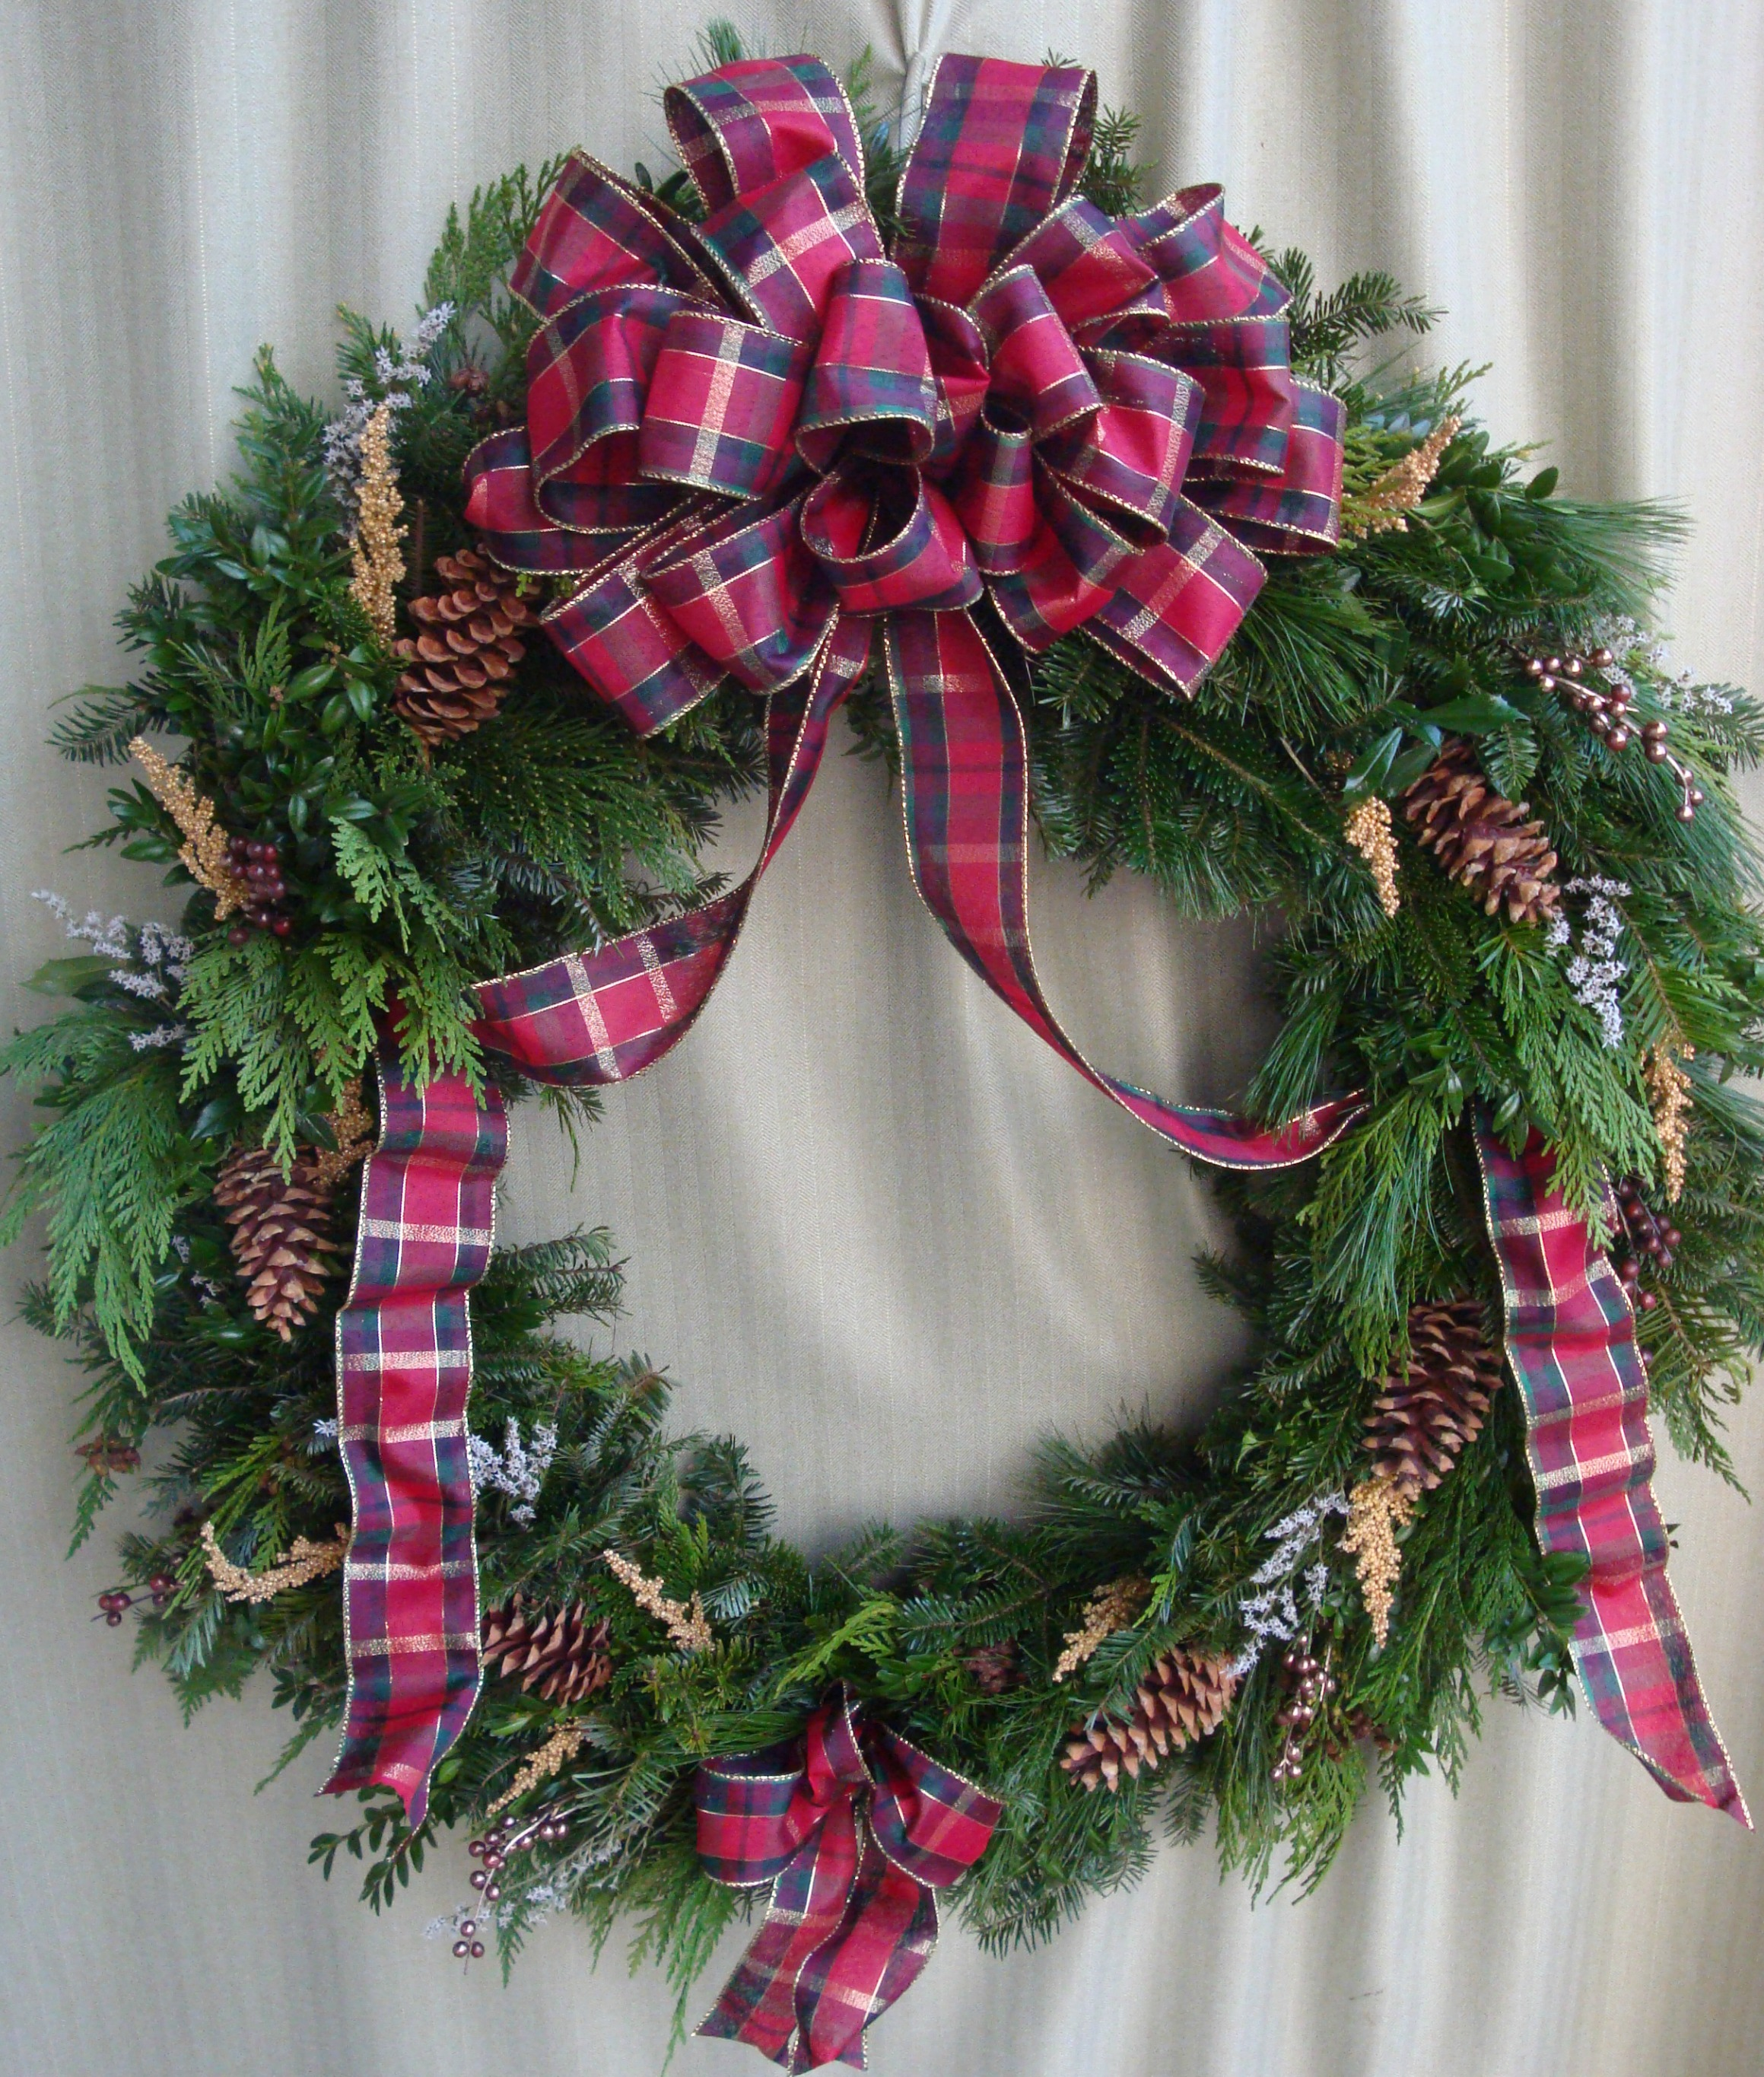 W- Mixed wreath with large bow.jpg